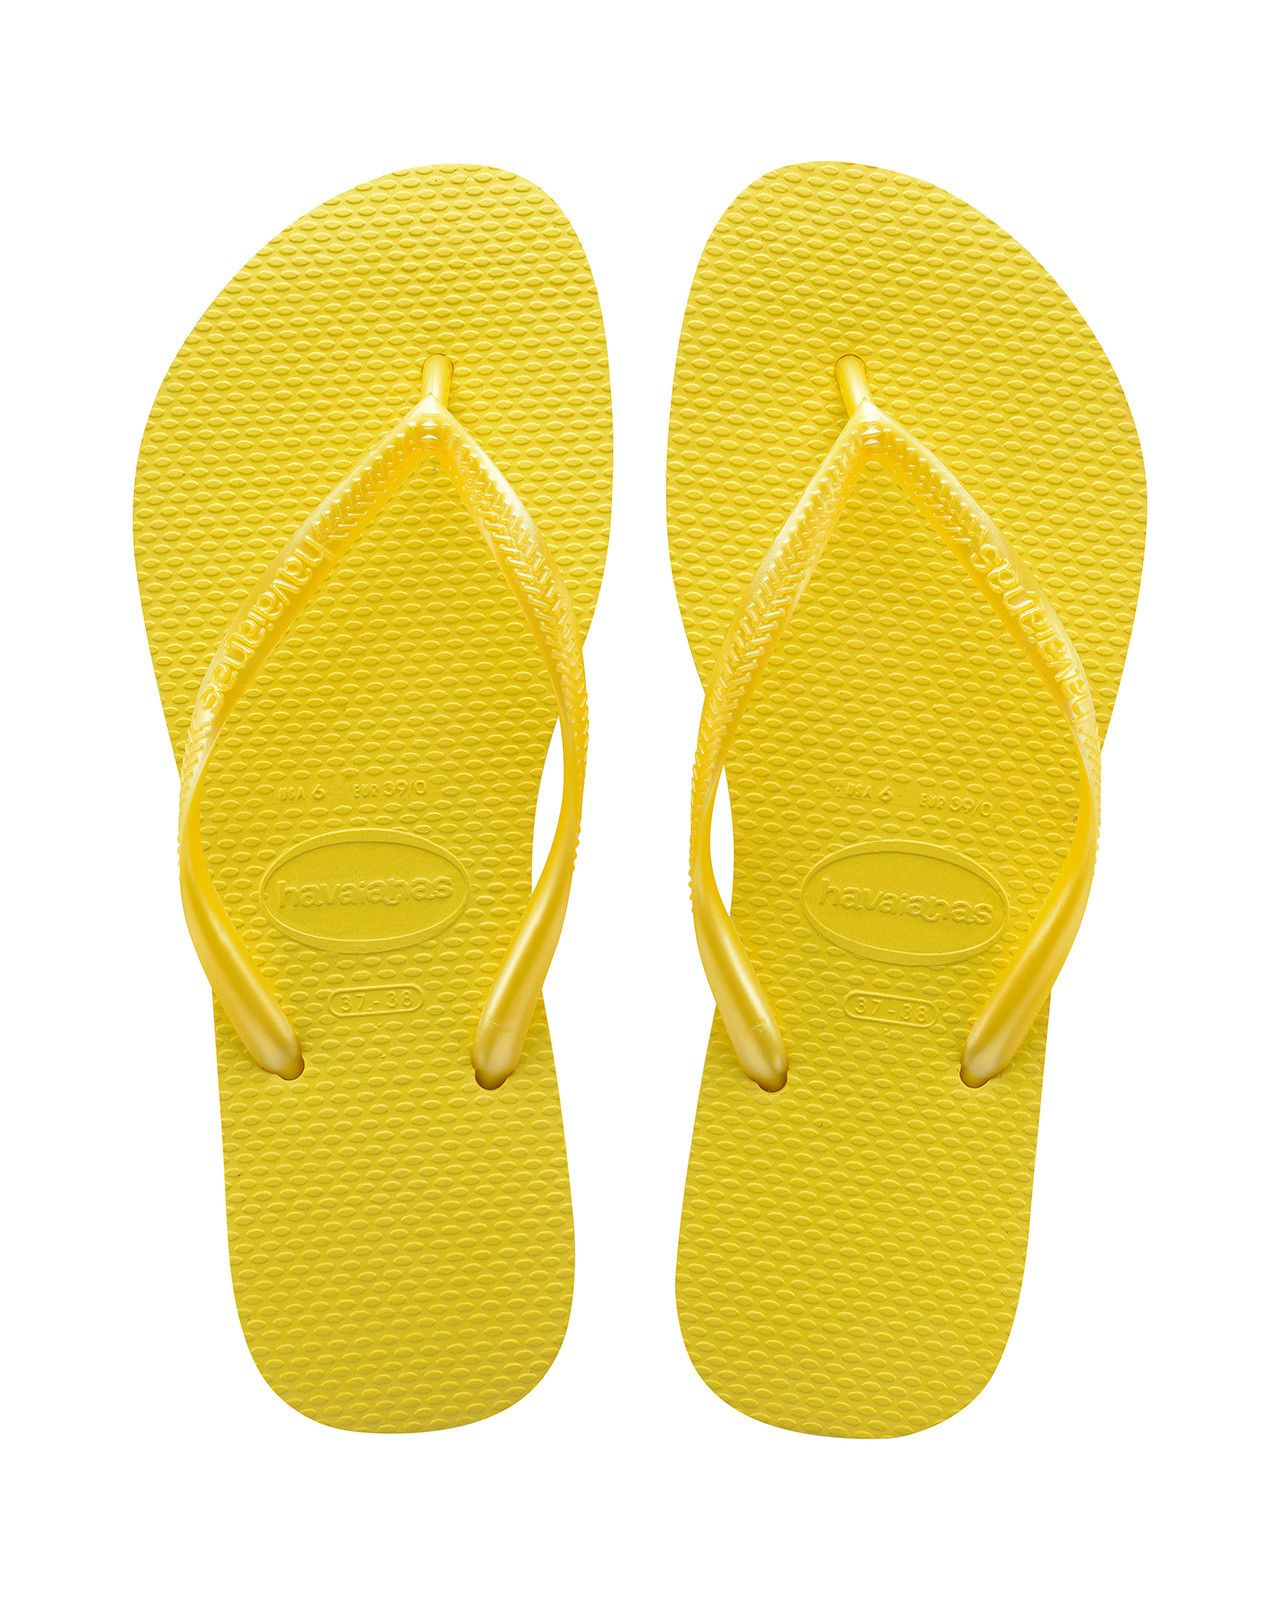 1d17133047e9 Havaianas Slim Revival Yellow Flip Flops Price From  £12.93 Crocs